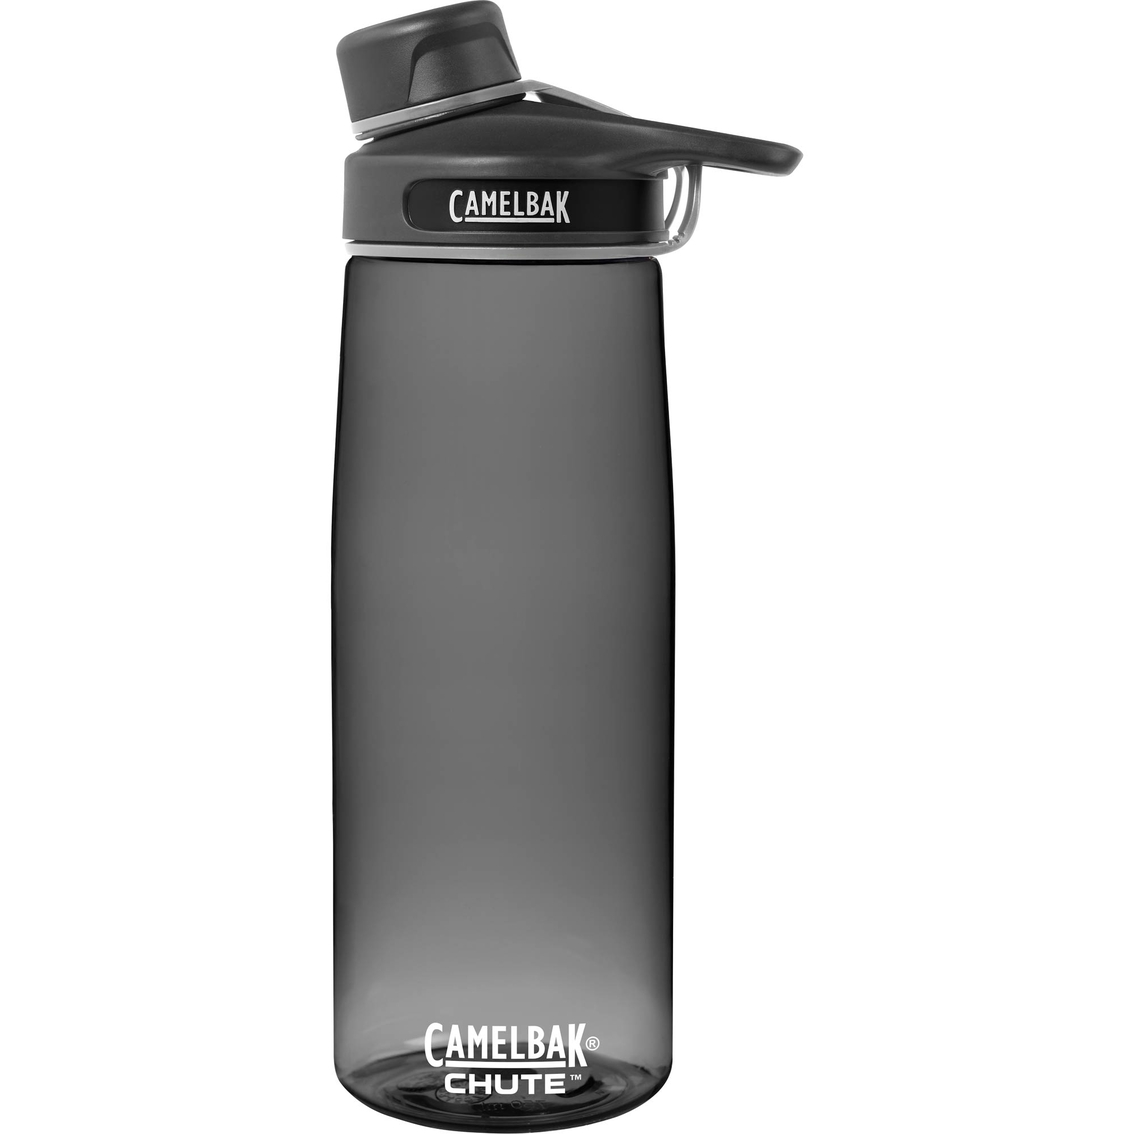 camelbak chute 75 liter water bottle gray hydration gifts food shop the exchange. Black Bedroom Furniture Sets. Home Design Ideas